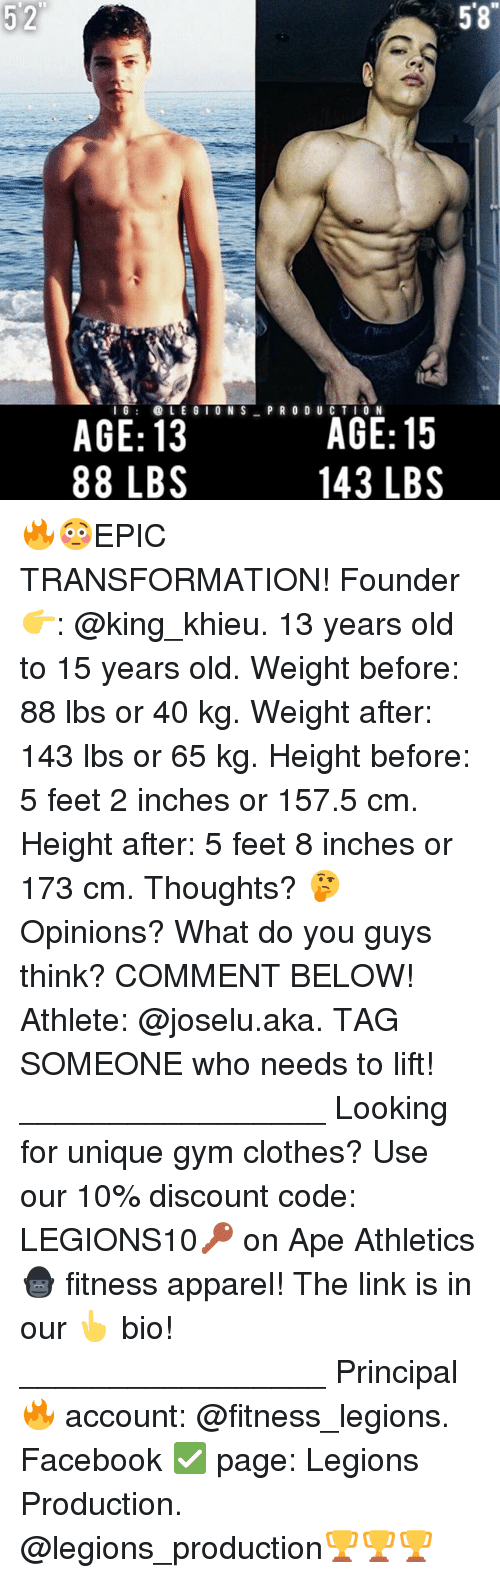 Memes, 🤖, and The Link: 5 2  58  I G  ION S  PRODUCTION  AGE: 13  AGE: 15  88 LBS  143 LBS 🔥😳EPIC TRANSFORMATION! Founder 👉: @king_khieu. 13 years old to 15 years old. Weight before: 88 lbs or 40 kg. Weight after: 143 lbs or 65 kg. Height before: 5 feet 2 inches or 157.5 cm. Height after: 5 feet 8 inches or 173 cm. Thoughts? 🤔Opinions? What do you guys think? COMMENT BELOW! Athlete: @joselu.aka. TAG SOMEONE who needs to lift! _________________ Looking for unique gym clothes? Use our 10% discount code: LEGIONS10🔑 on Ape Athletics 🦍 fitness apparel! The link is in our 👆 bio! _________________ Principal 🔥 account: @fitness_legions. Facebook ✅ page: Legions Production. @legions_production🏆🏆🏆